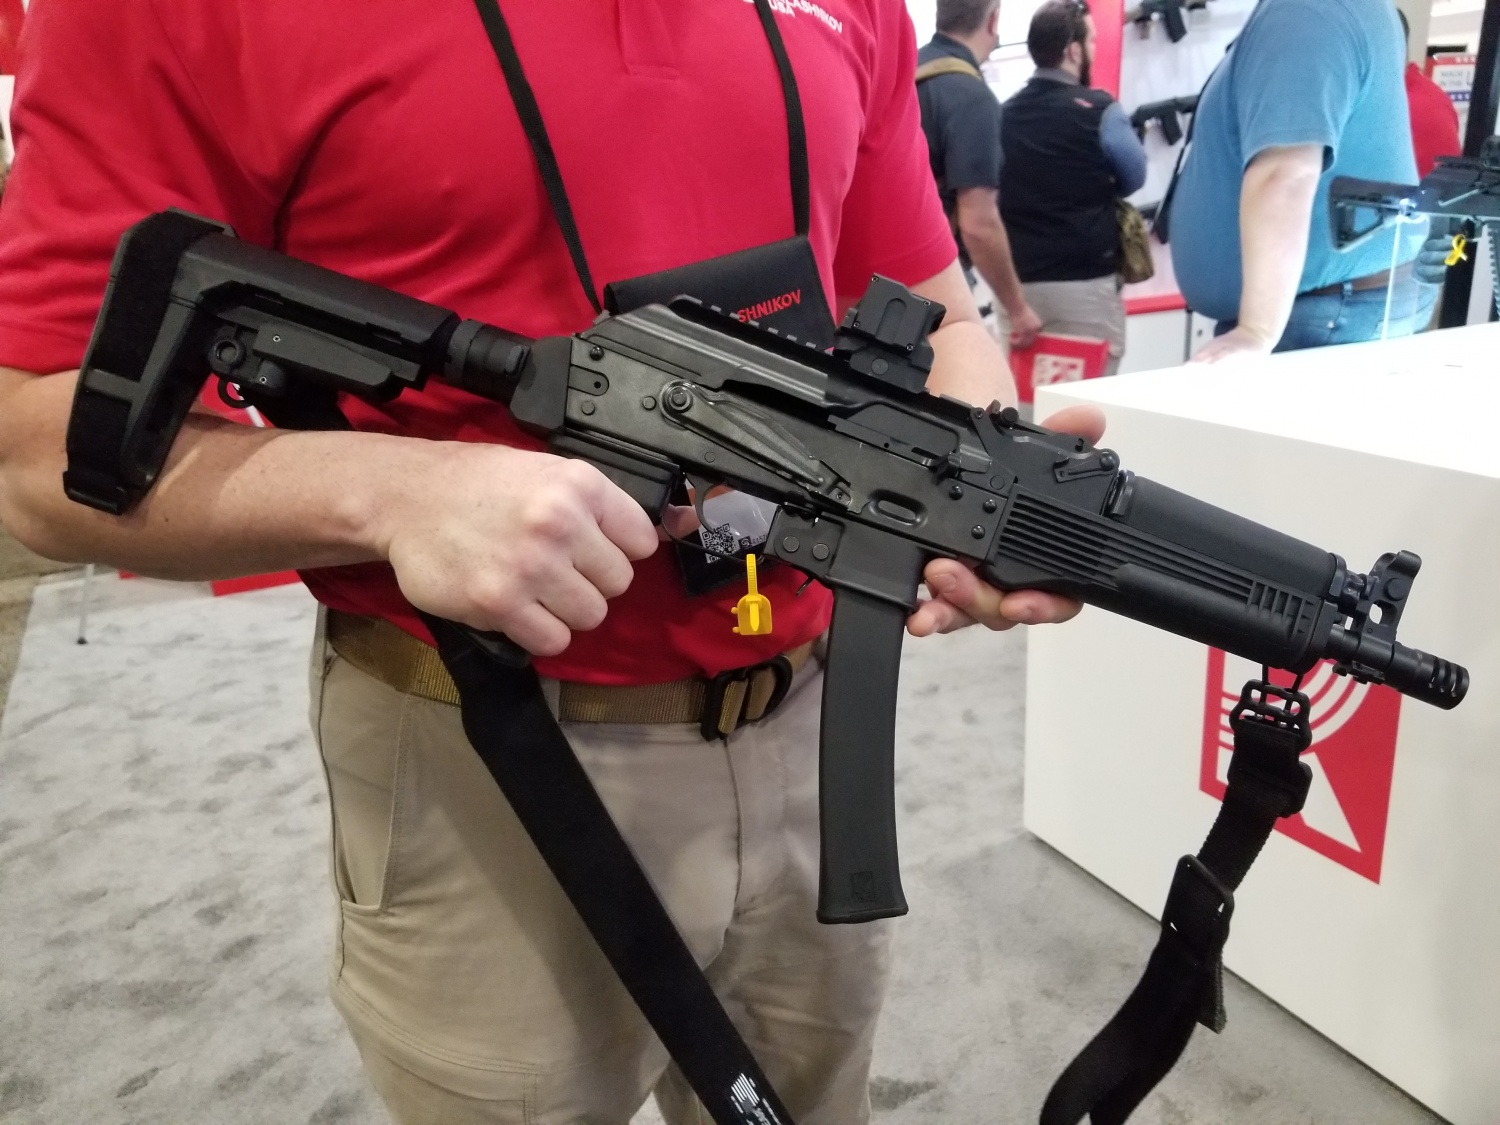 KR-9 pistol with a brace and red dot sight